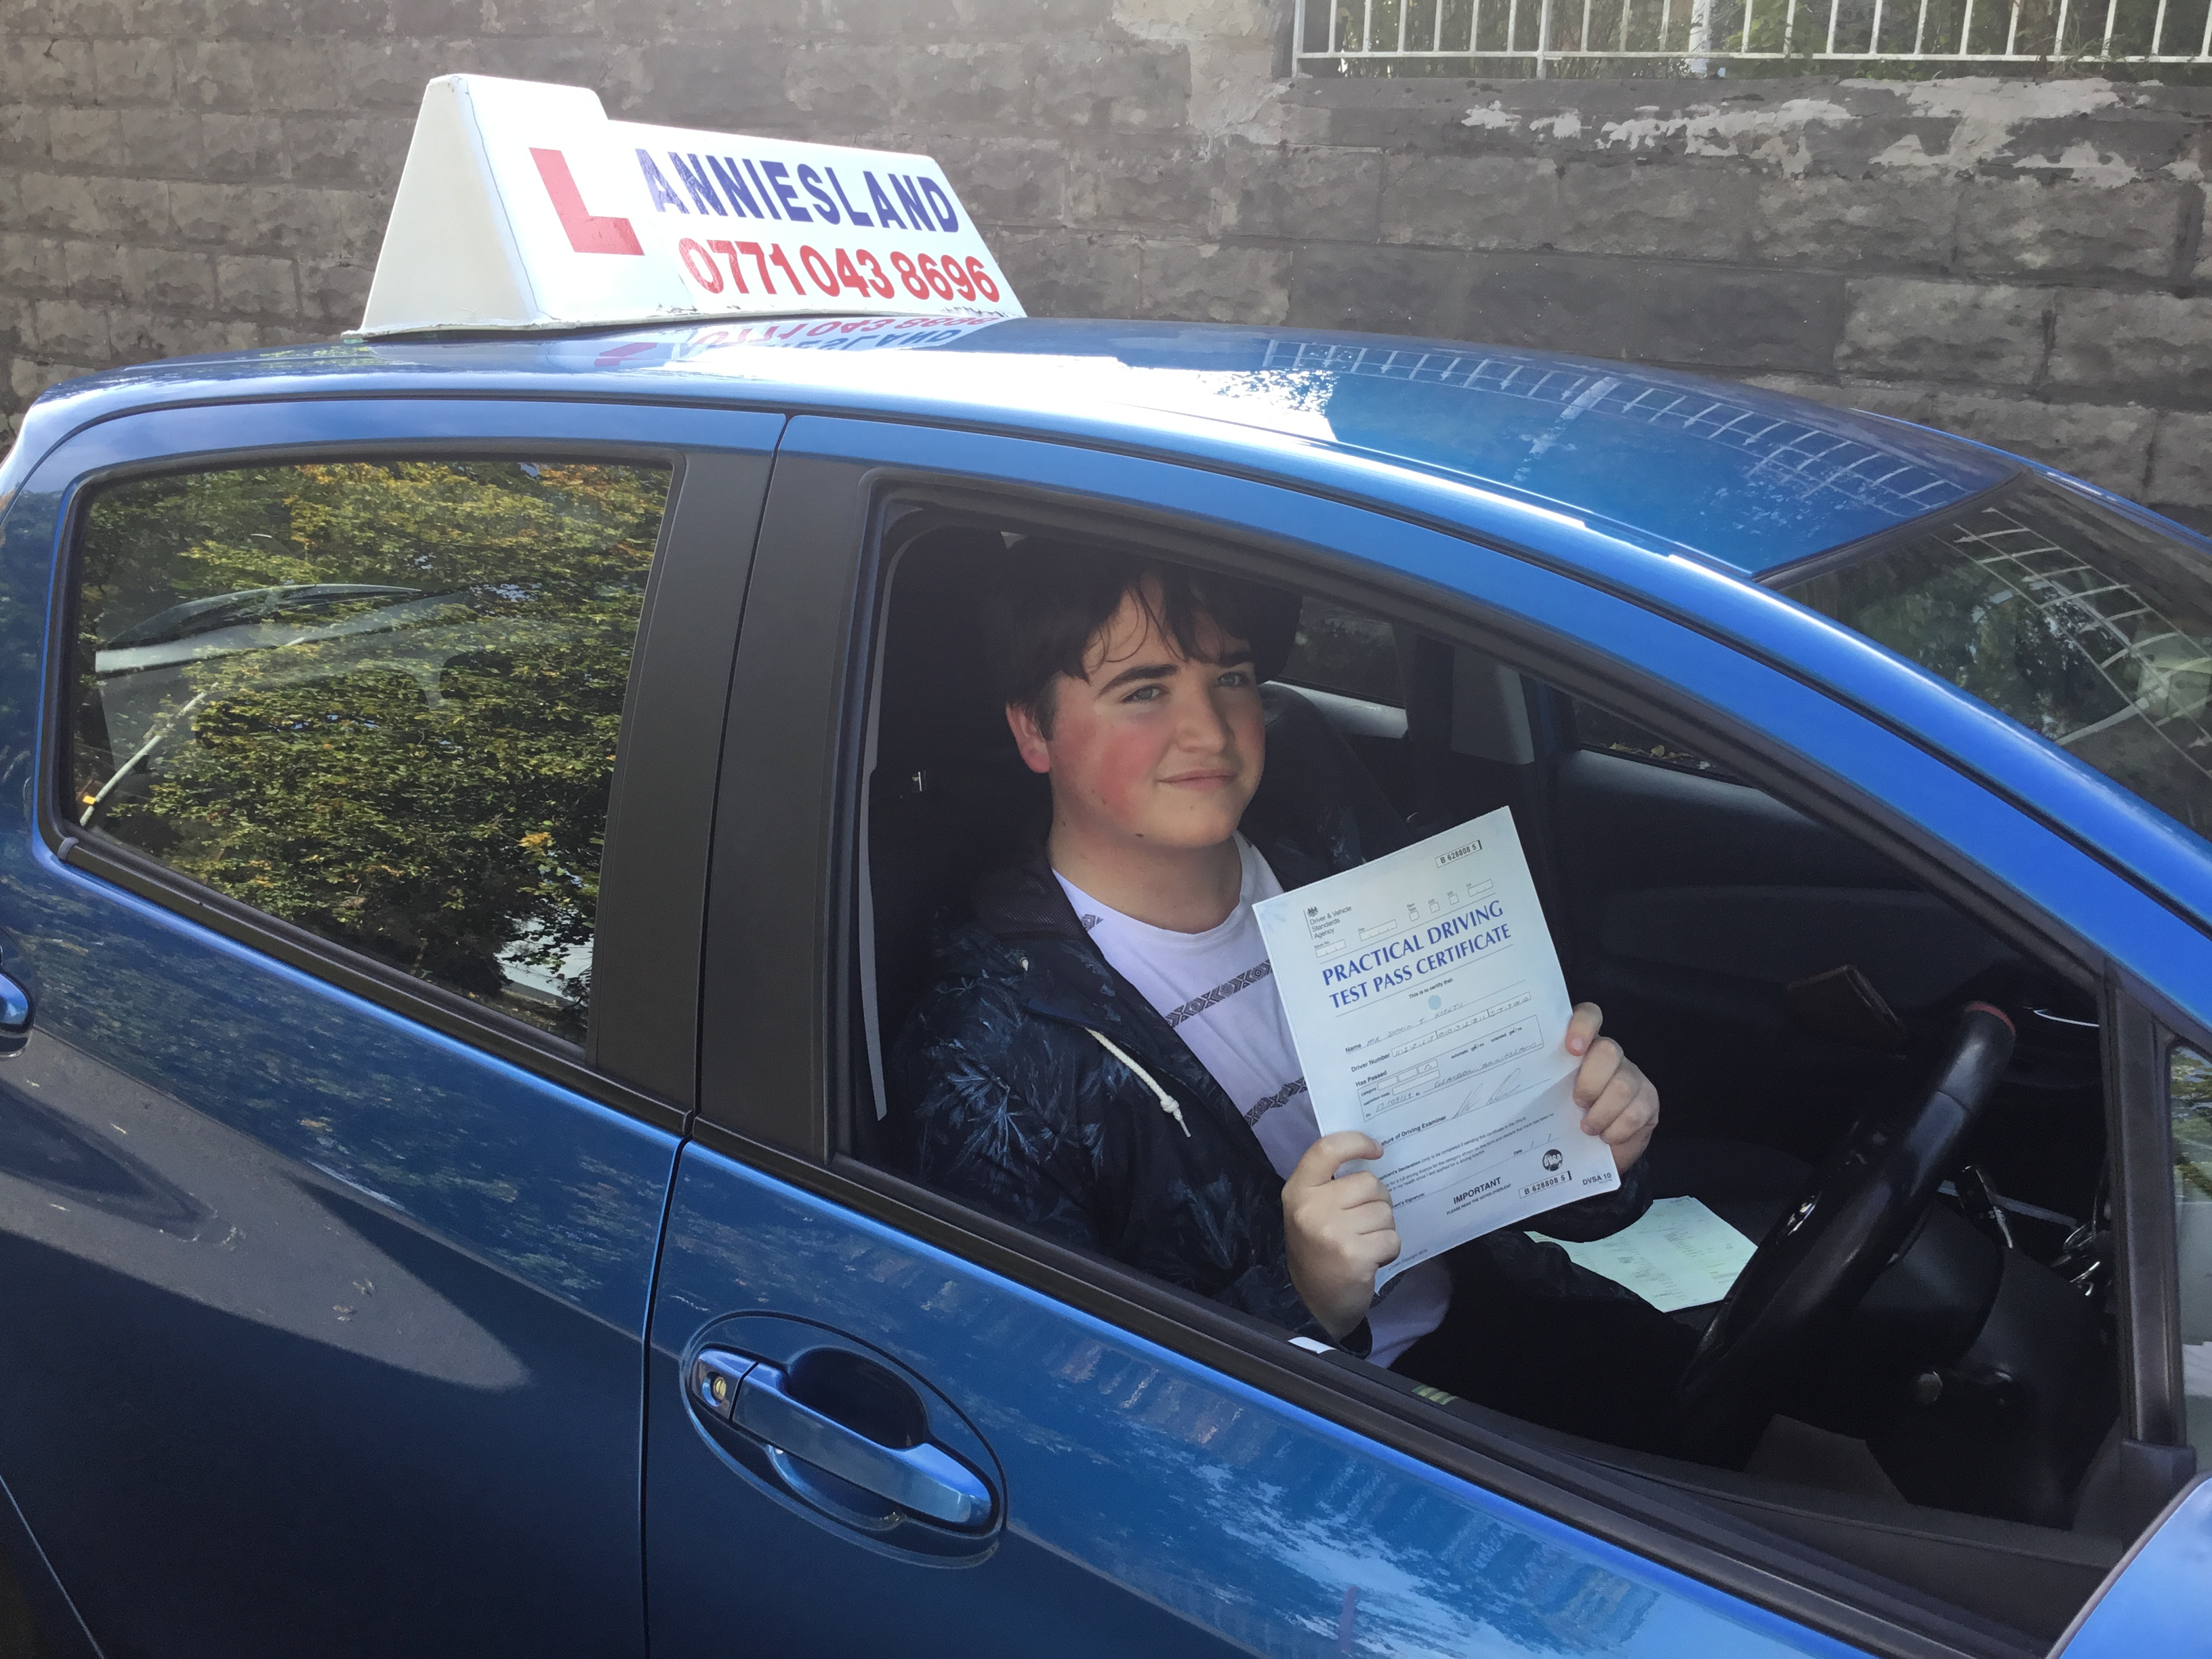 Simon Kielty successfully passed their driving test with Anniesland Driving School